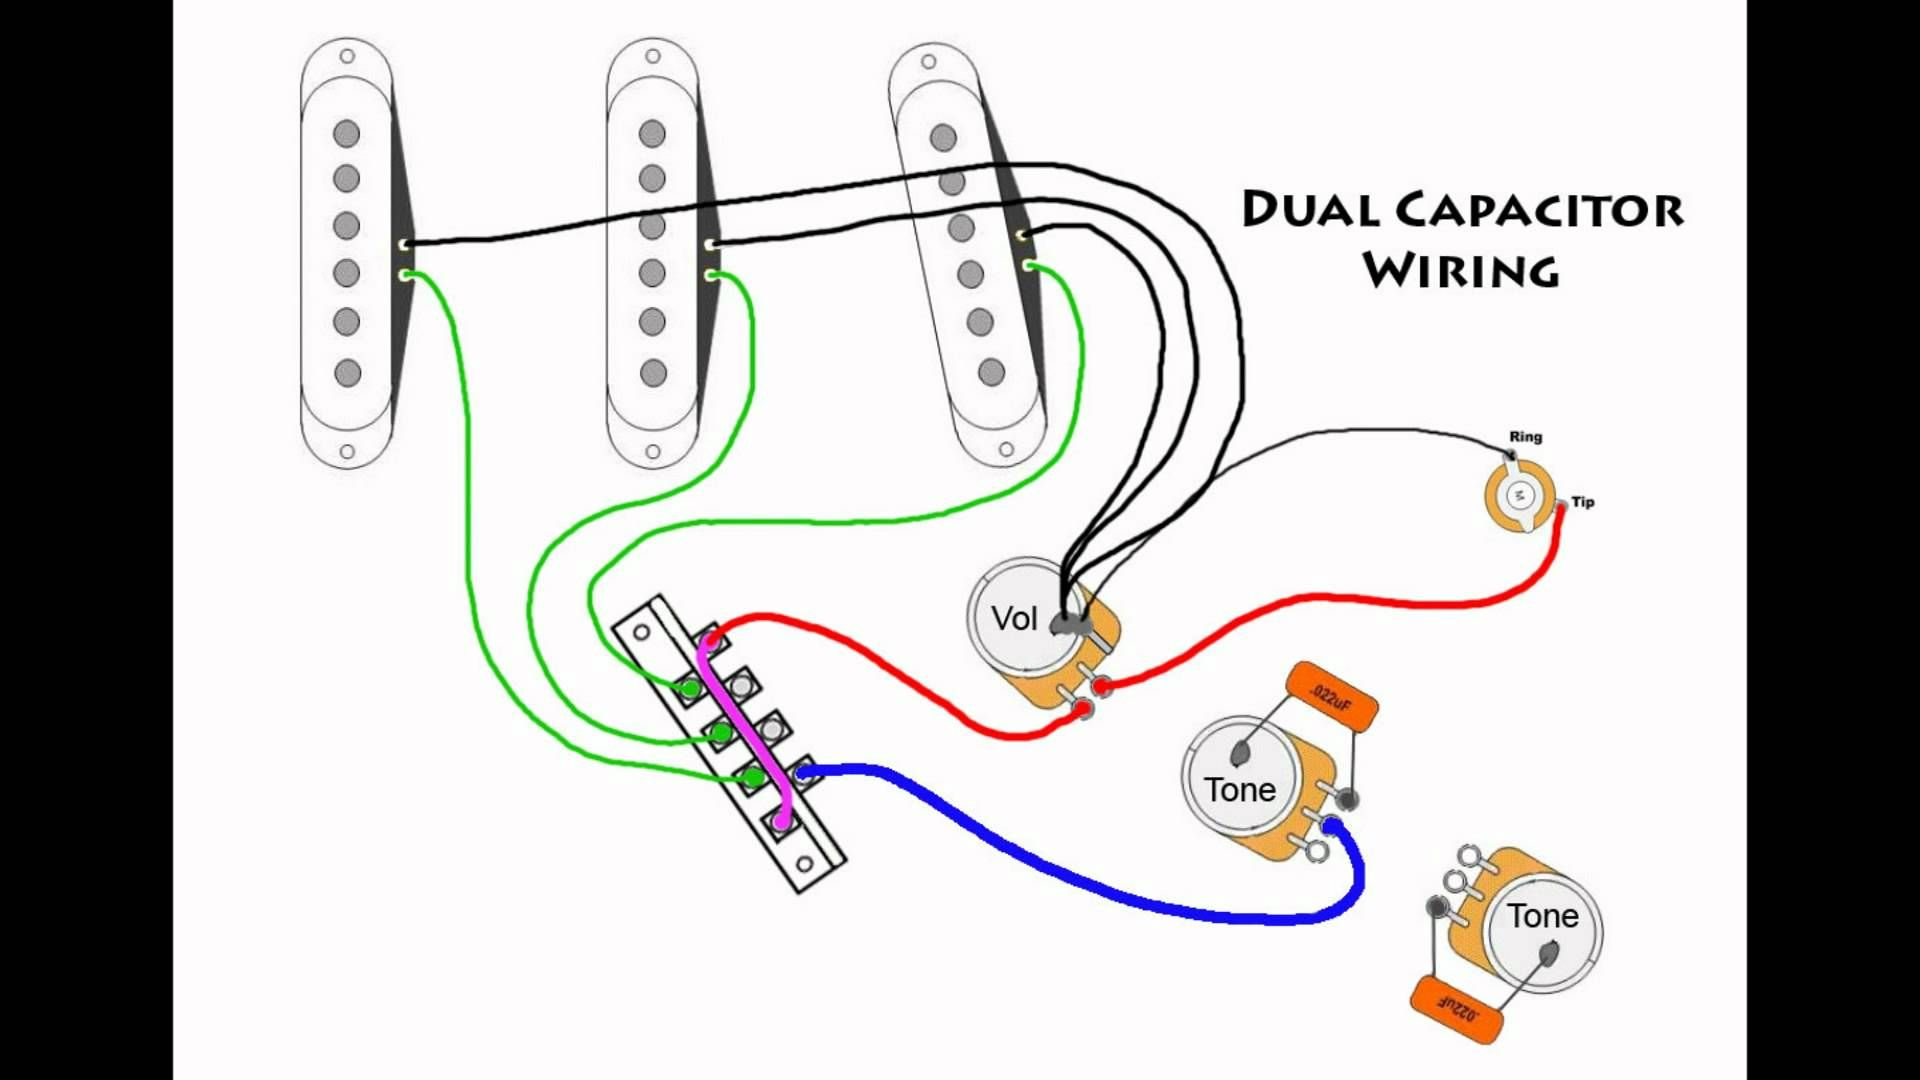 637a3d8a3cfe08d1dece6945468f511f Vintage Single Coil Strat Wiring Diagram on